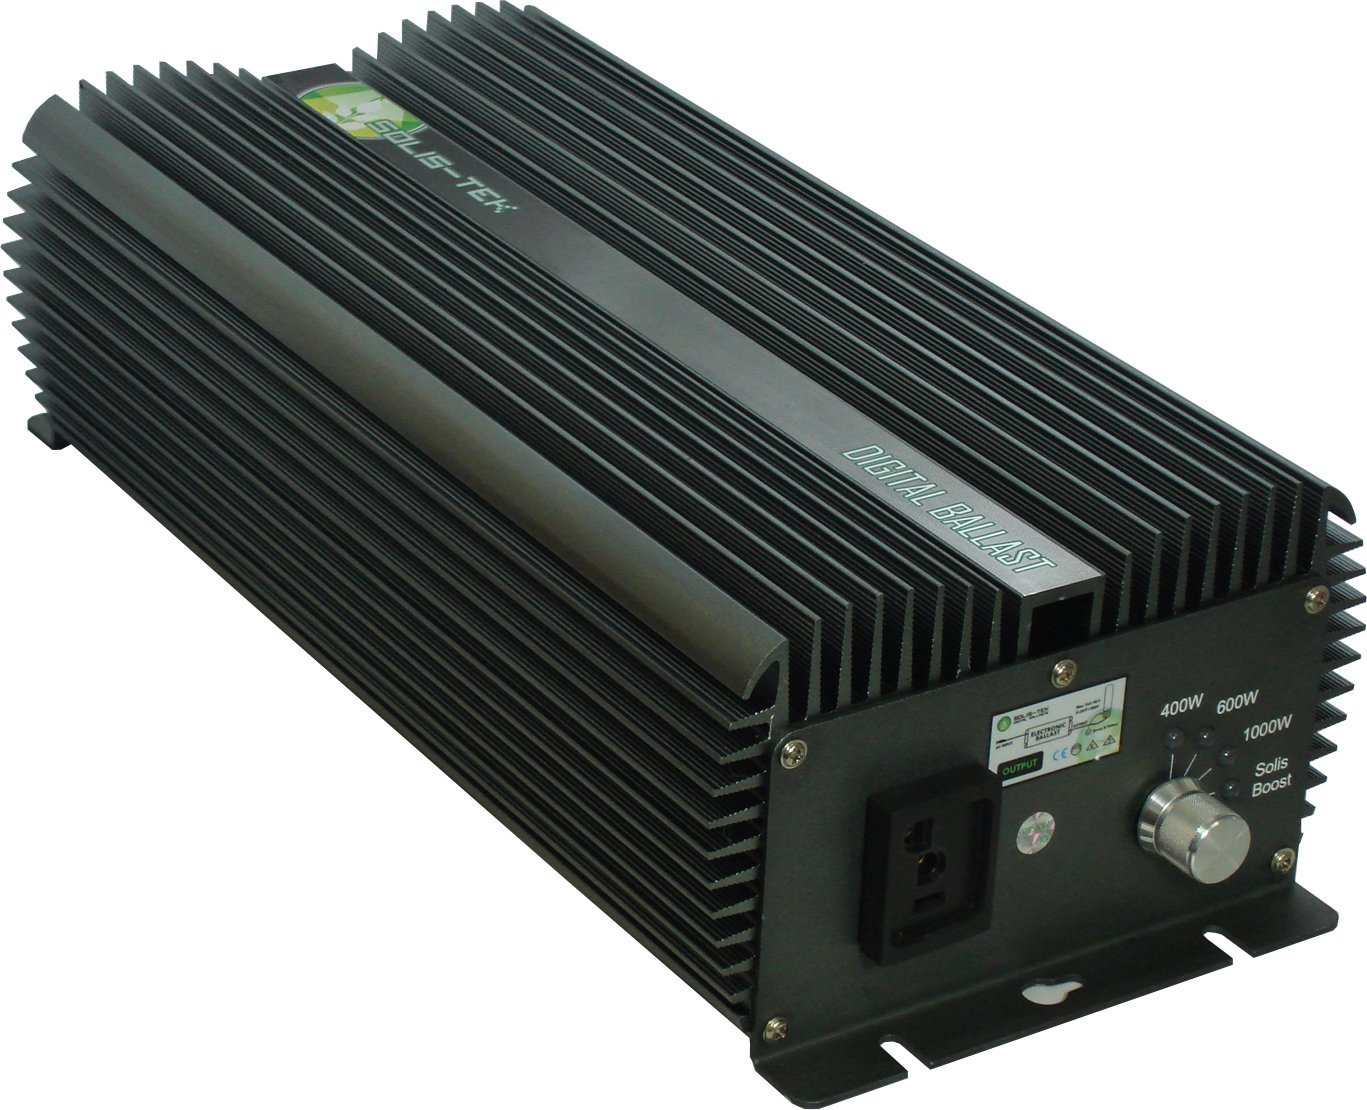 SolisTek 1000/750/600W Digital Ballast 120/240V